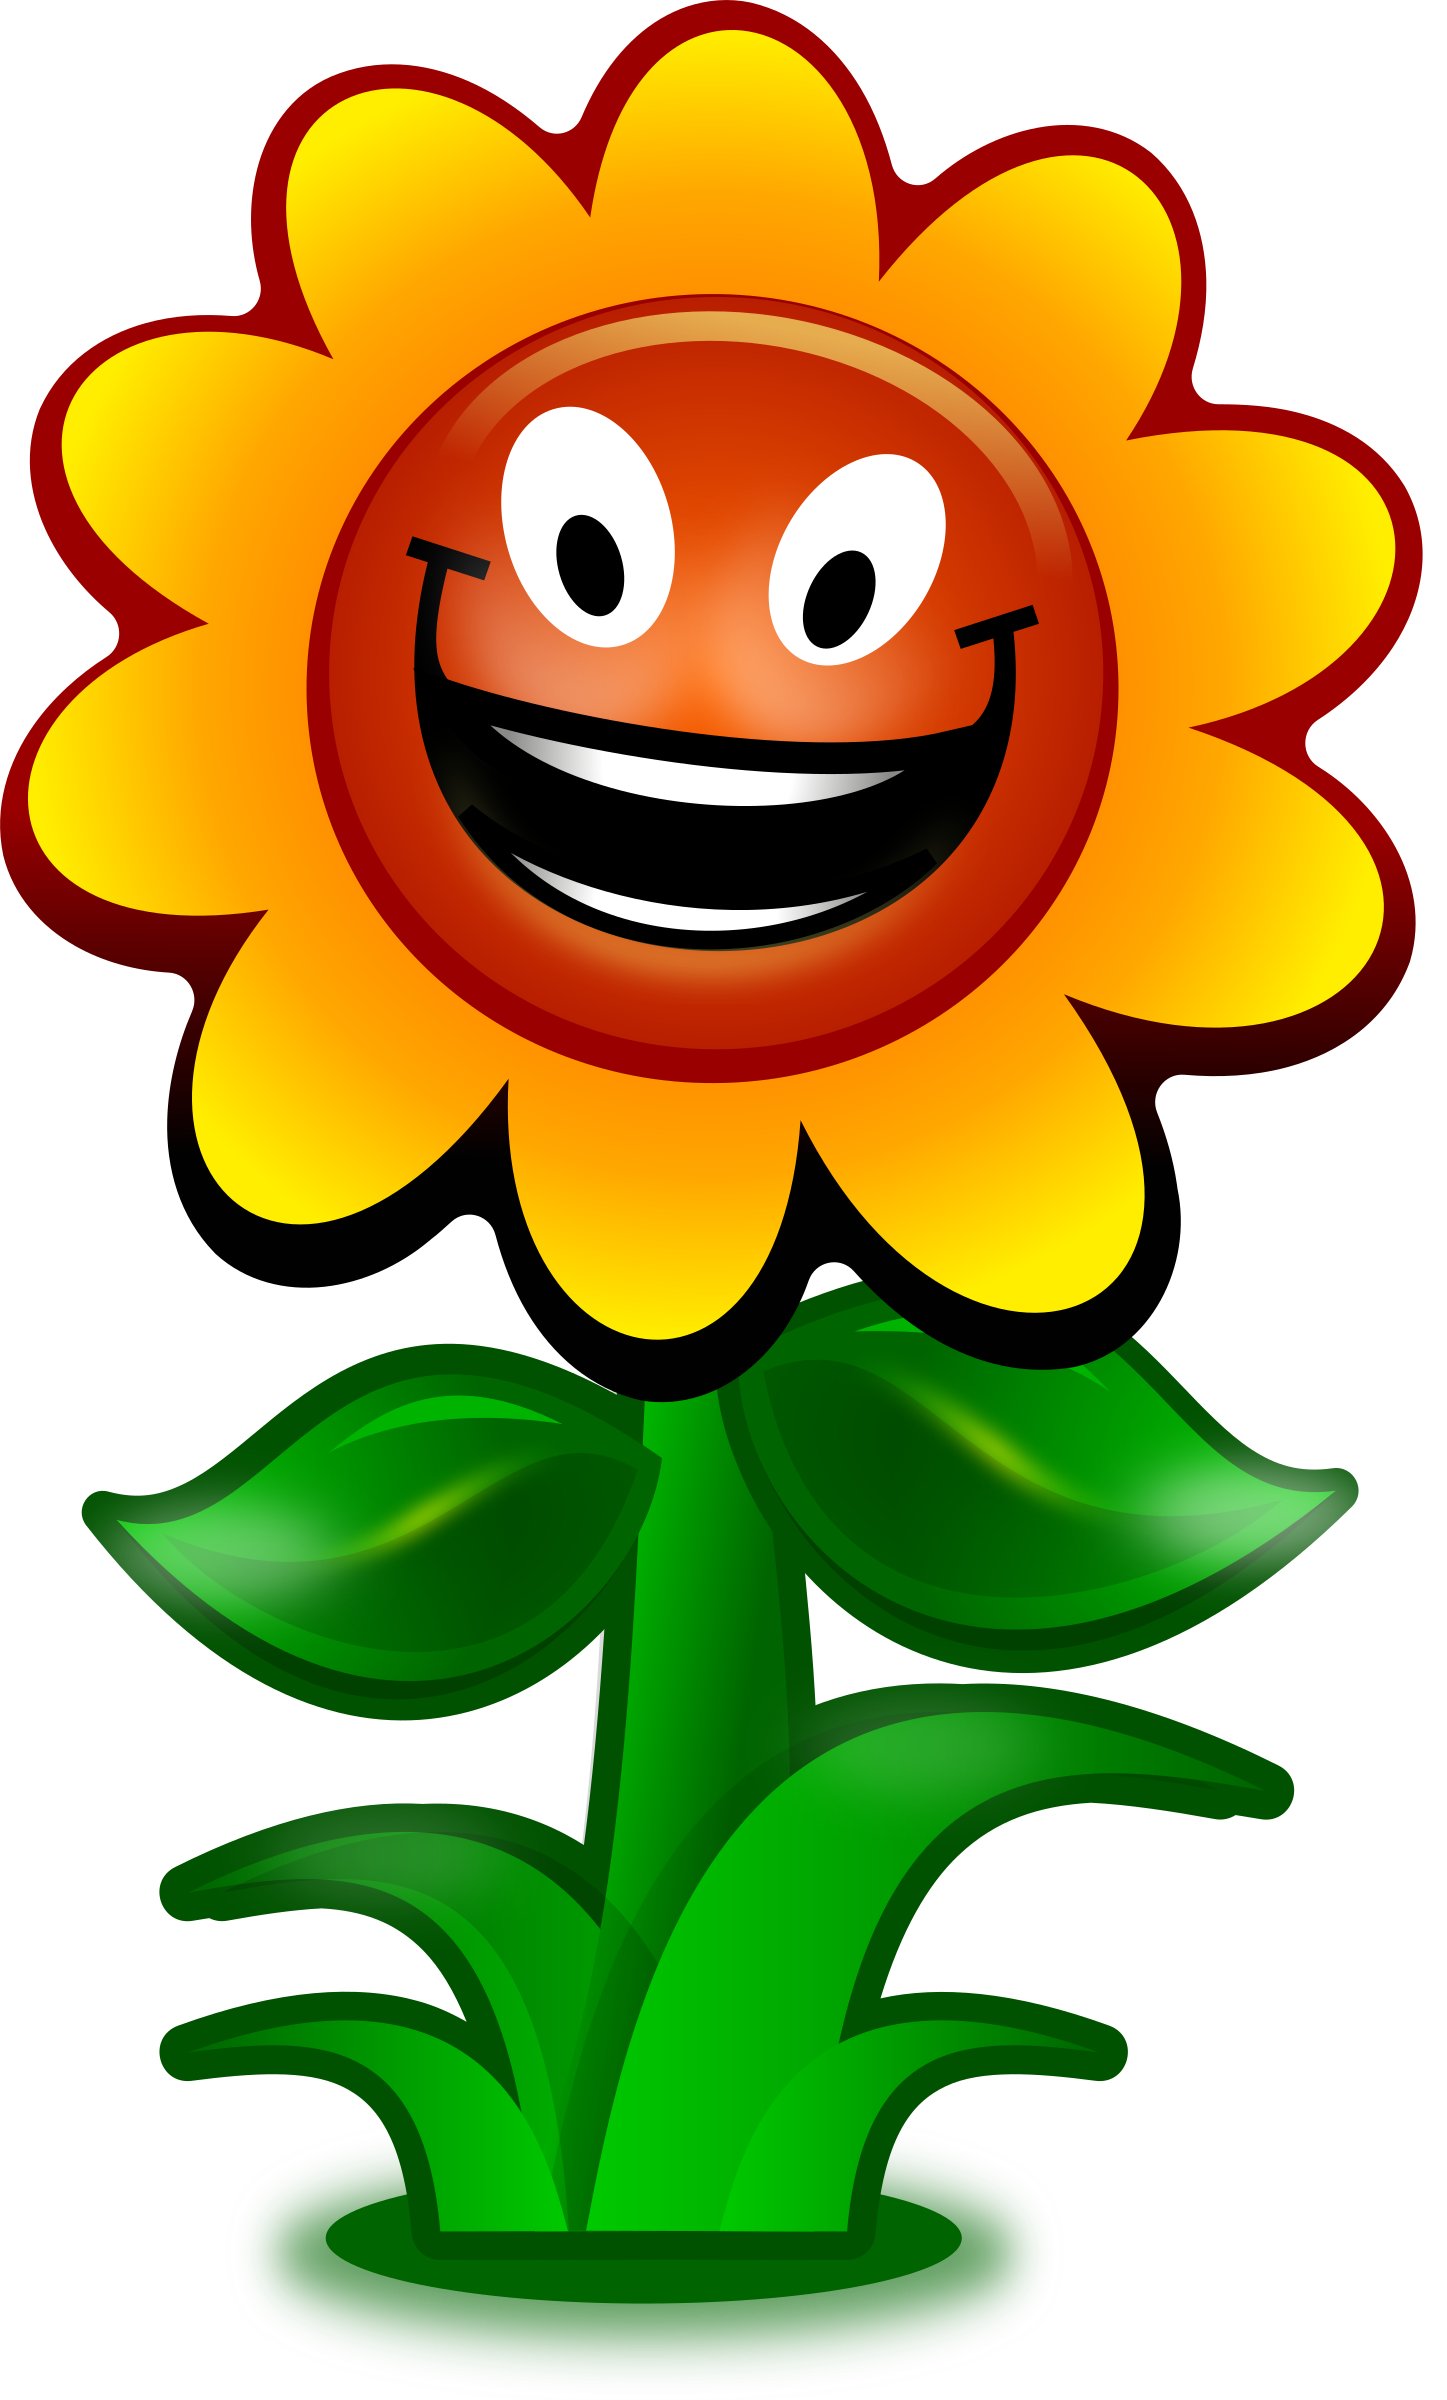 free Character clipart flower. Cartoon game big image.